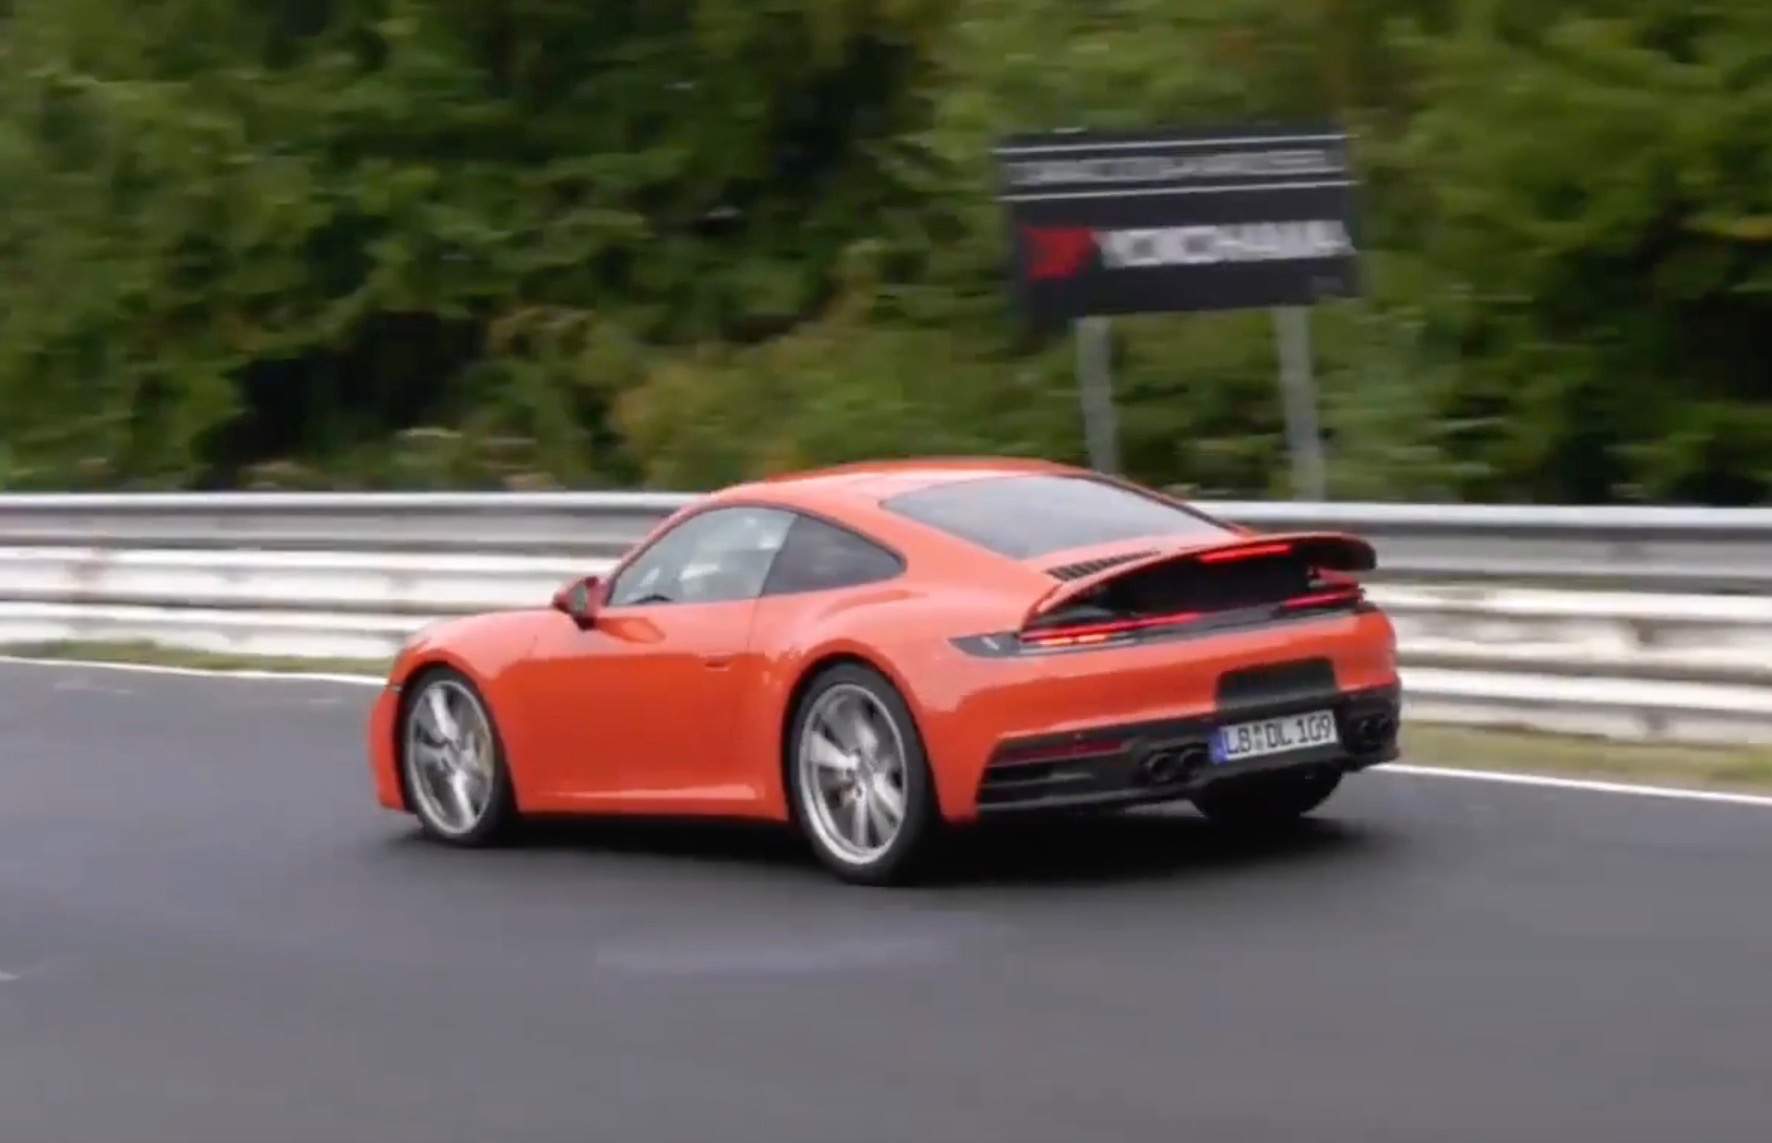 2019 Porsche 911 Turbo S >> 2019 Porsche '992' 911 spied without camouflage, looks fast (video) | PerformanceDrive